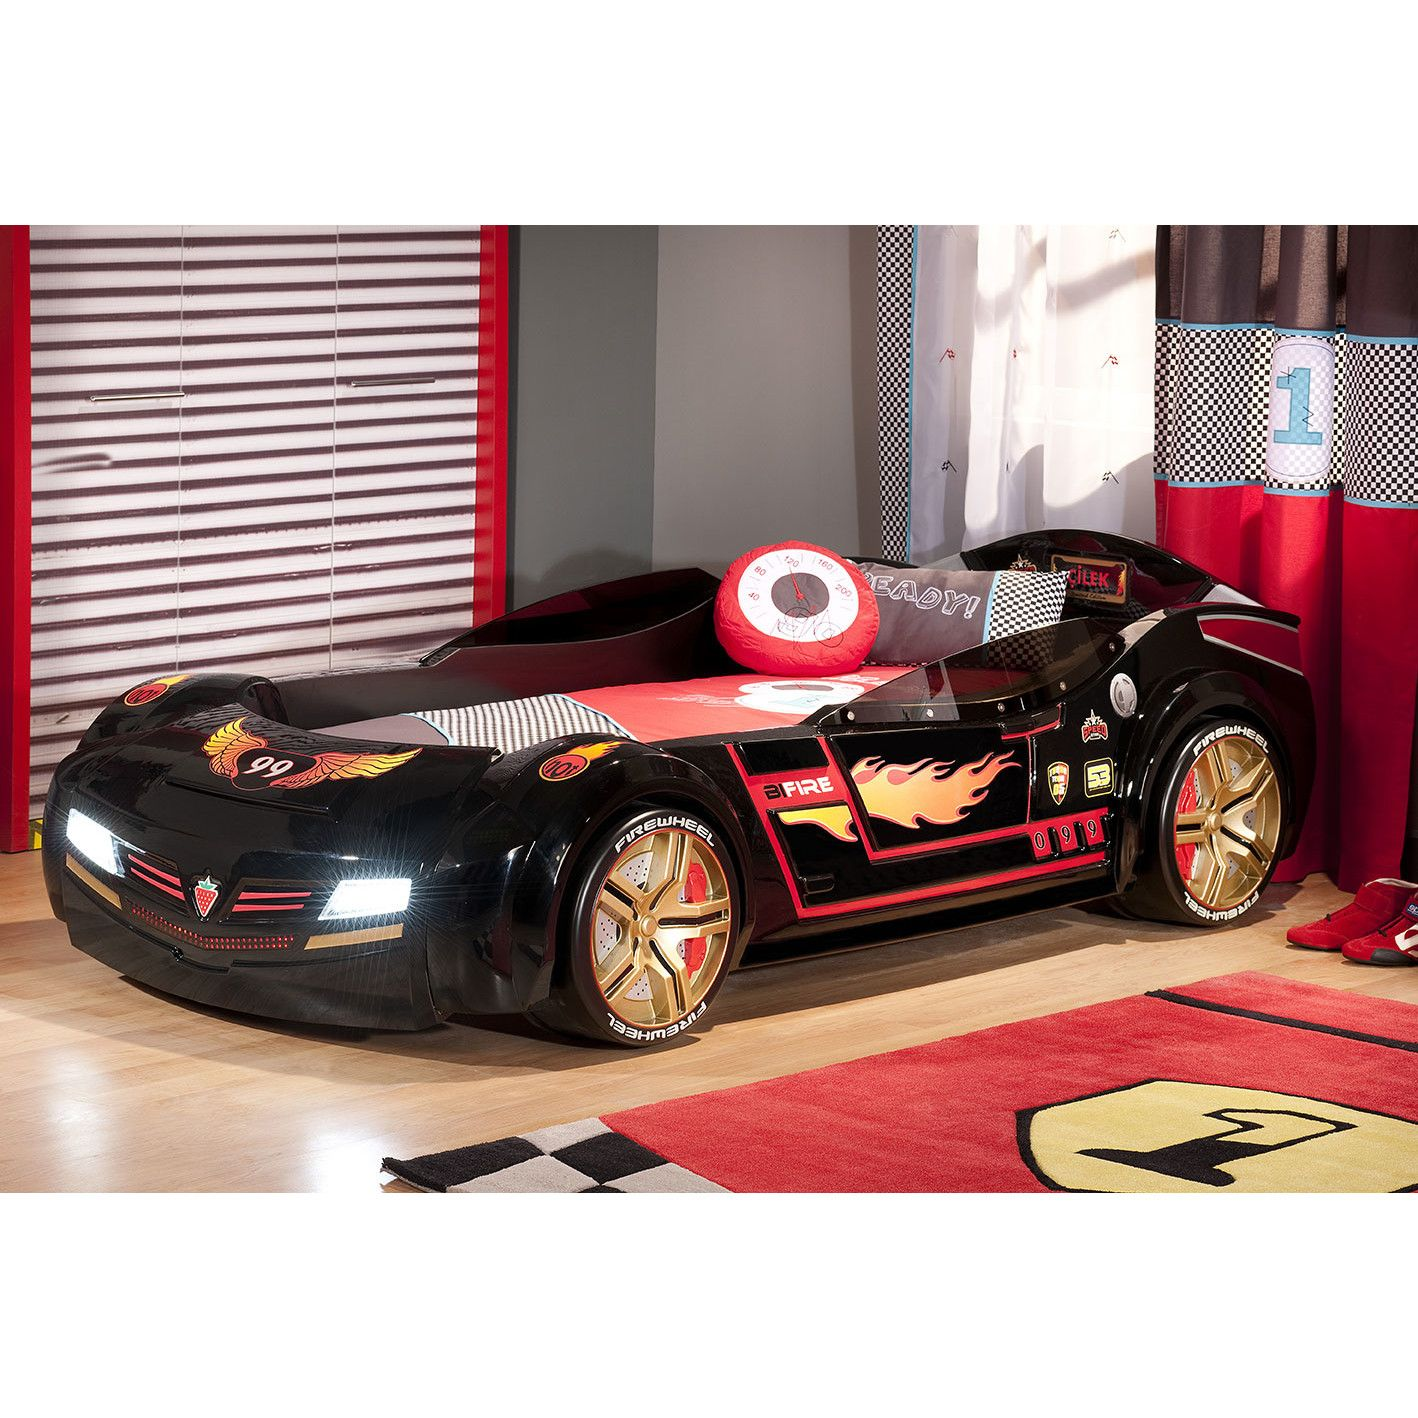 Cilek Need For Sleep Night Rider Turbo Car Bed With Roadster